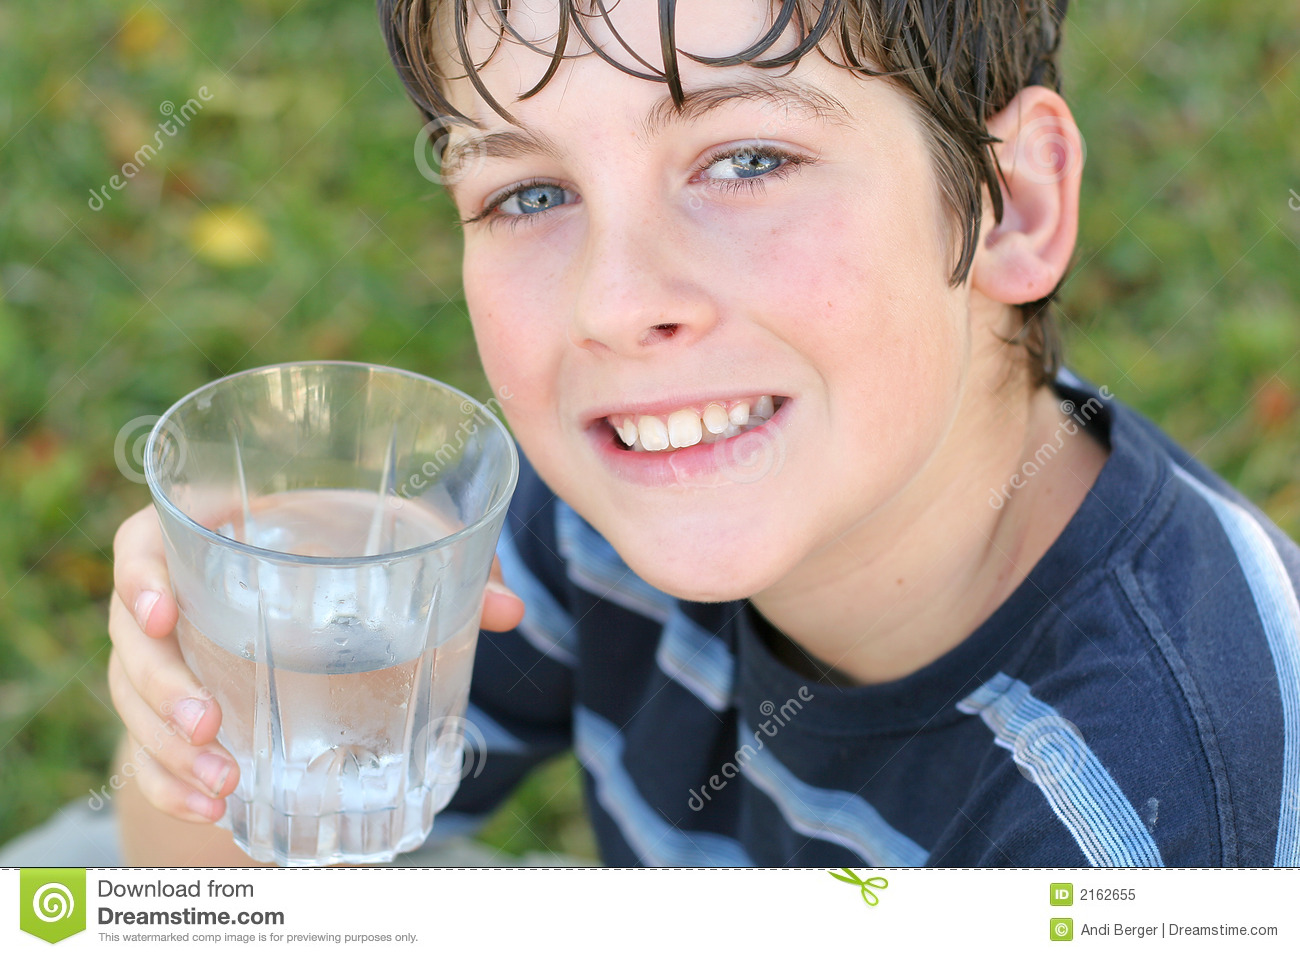 A Adorable Boy Water 2162655 Stock Glass Nature Image Drinking Of -